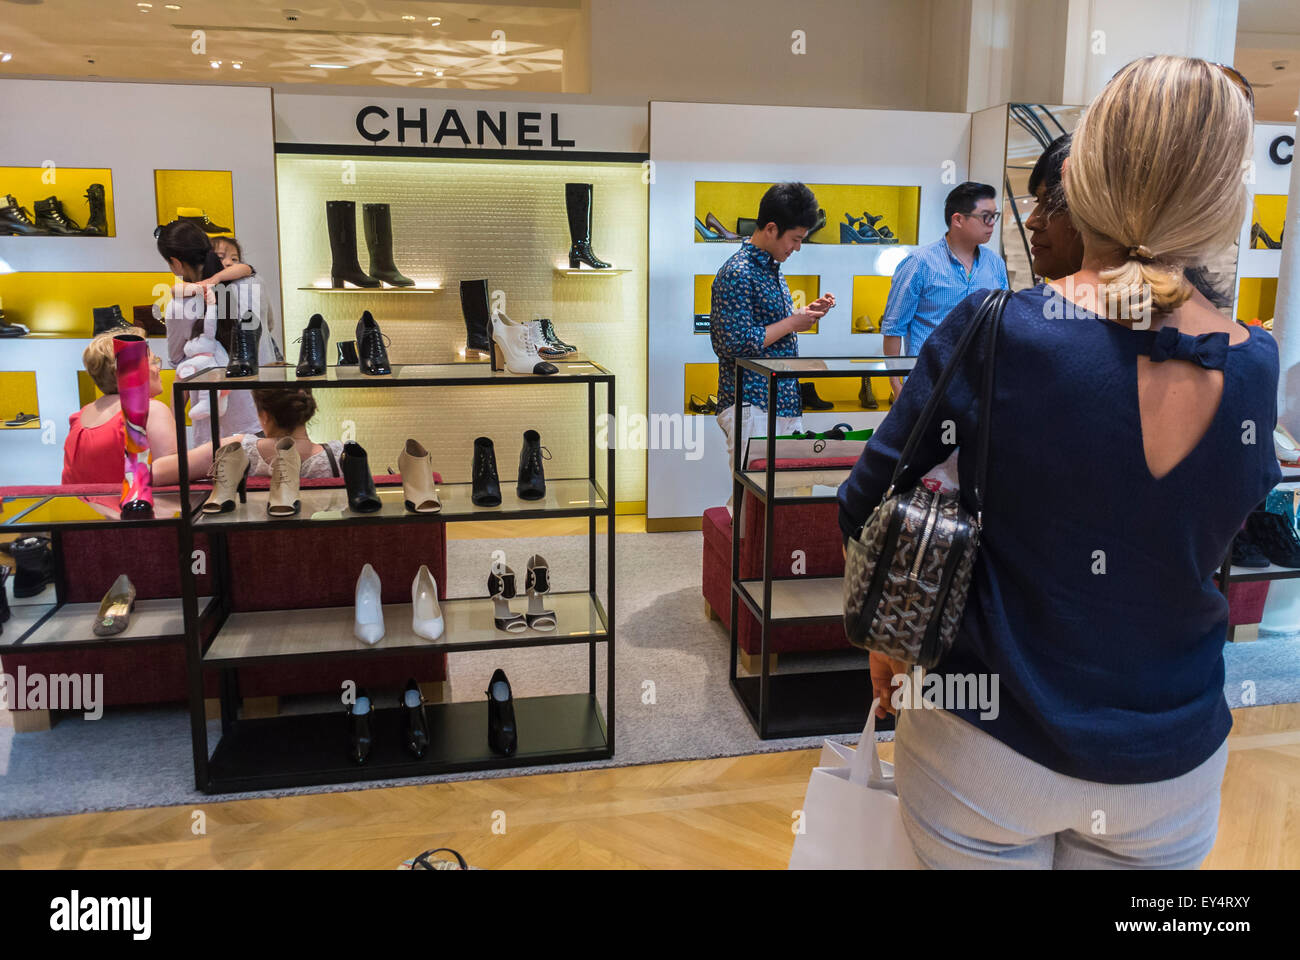 chanel bon marche store - photo#2